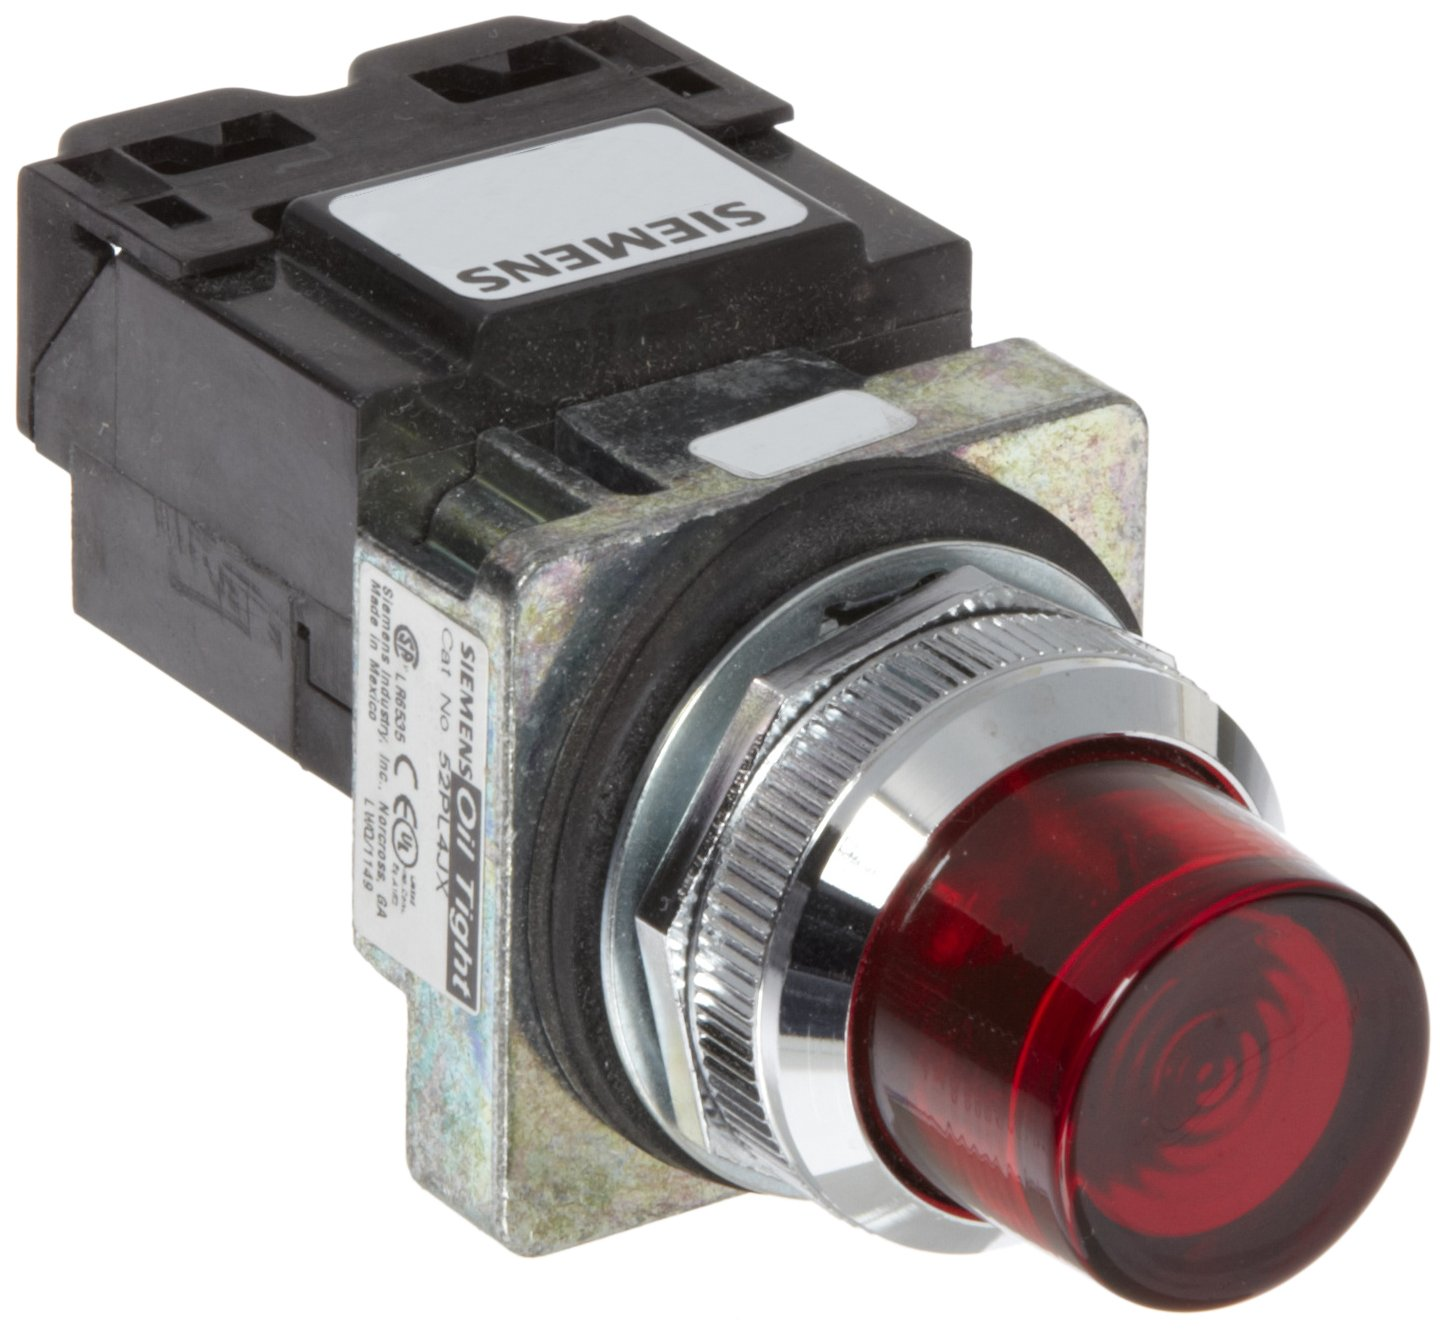 Siemens 52PL5J2 Heavy Duty Pilot Light, Water and Oil Tight, Glass Lens, Transformer, 6V 755 Type Lamp or 6V LED, Red, 480VAC Voltage